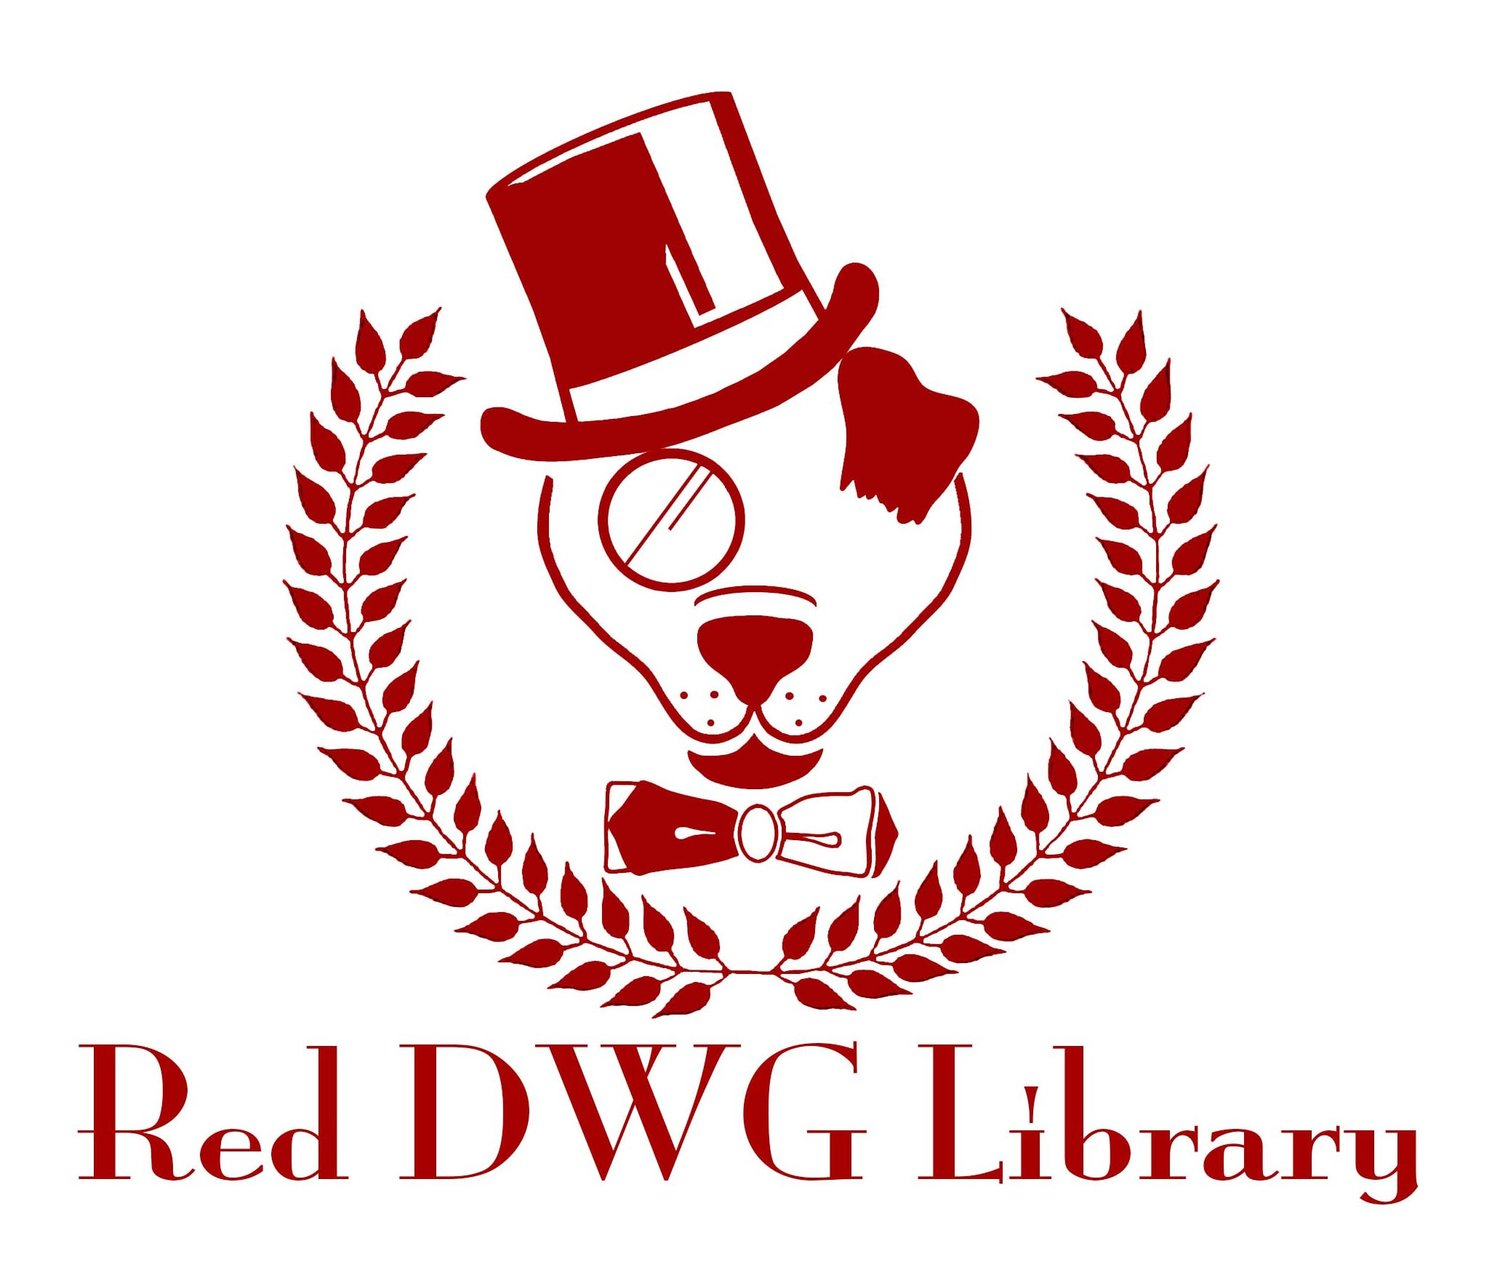 Red DWG Library